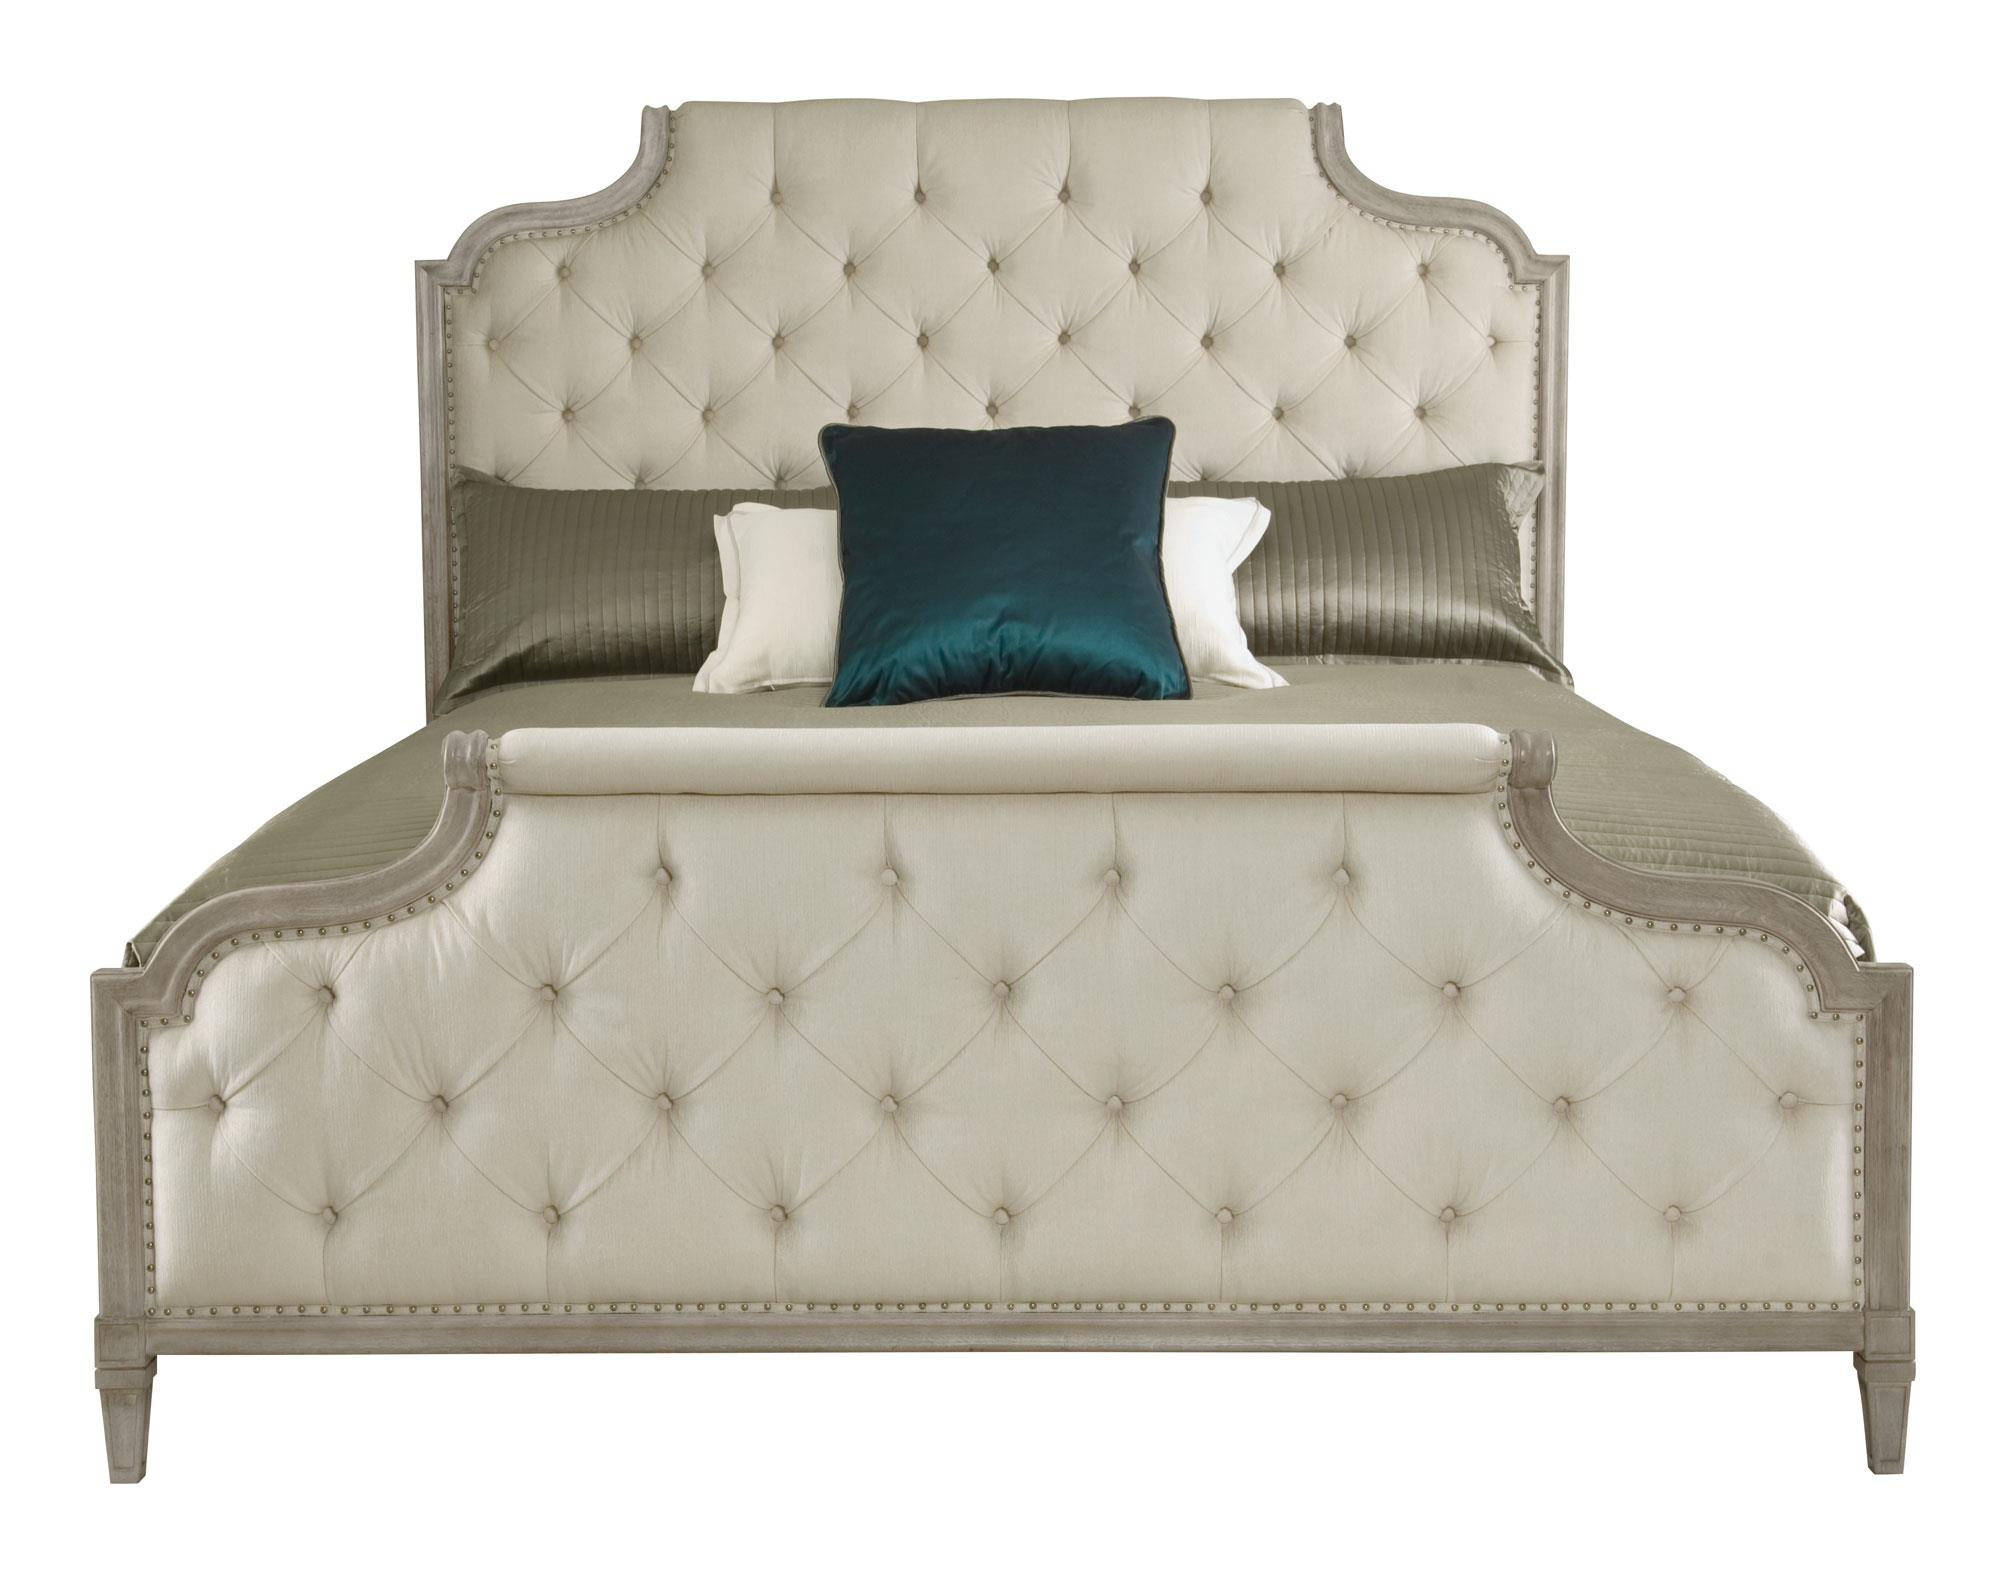 Bernhardt Marquesa Montrose King Upholstered Bed - Item Number: 359-H09-H09-R09